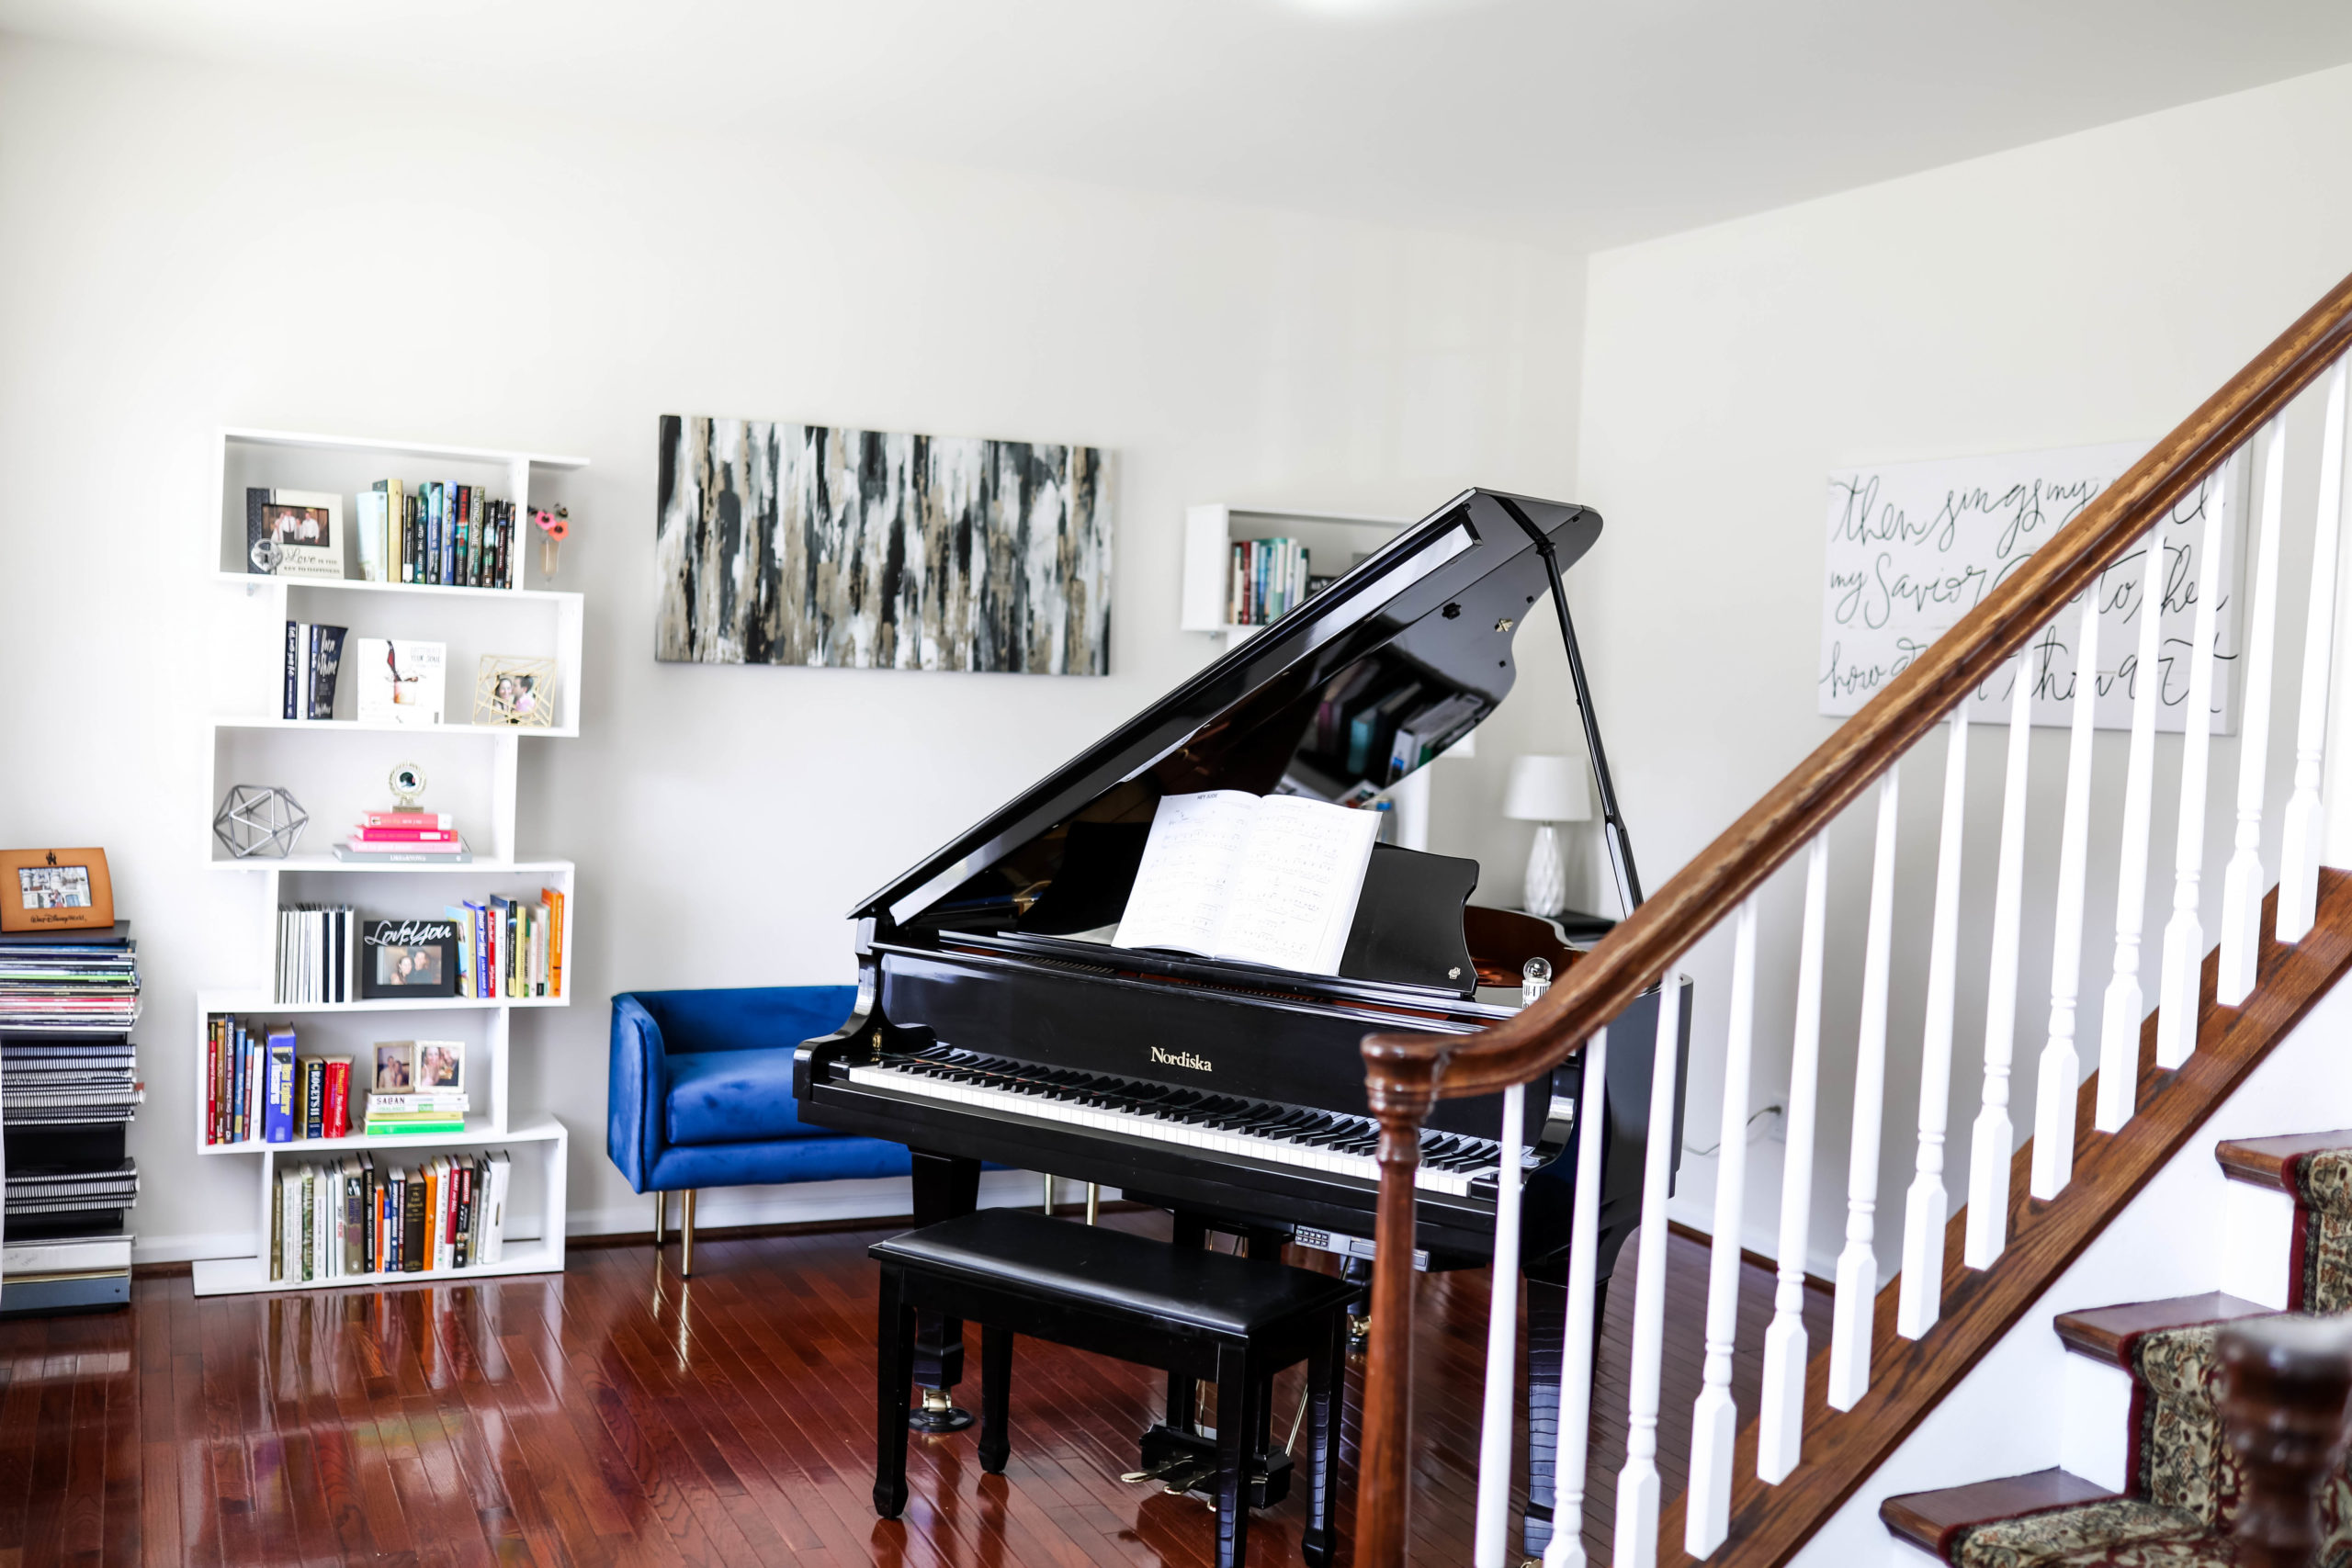 piano shown in home library